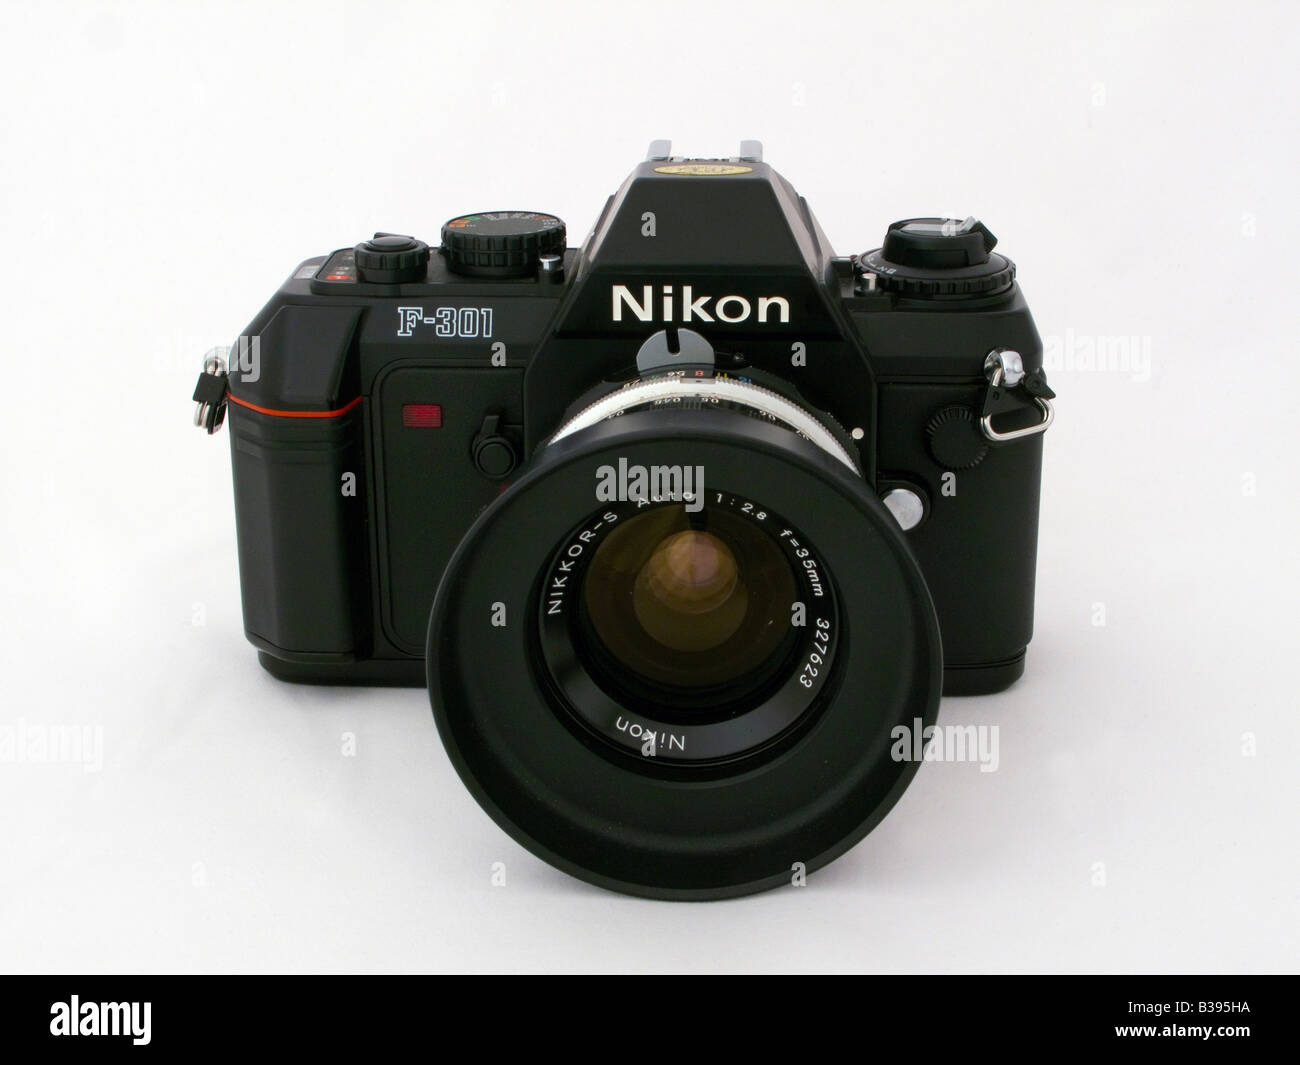 used nikon 301 slr camera with nikkor 35 mm manual focus lens and rh alamy com camera app with manual focus compact camera with manual focus